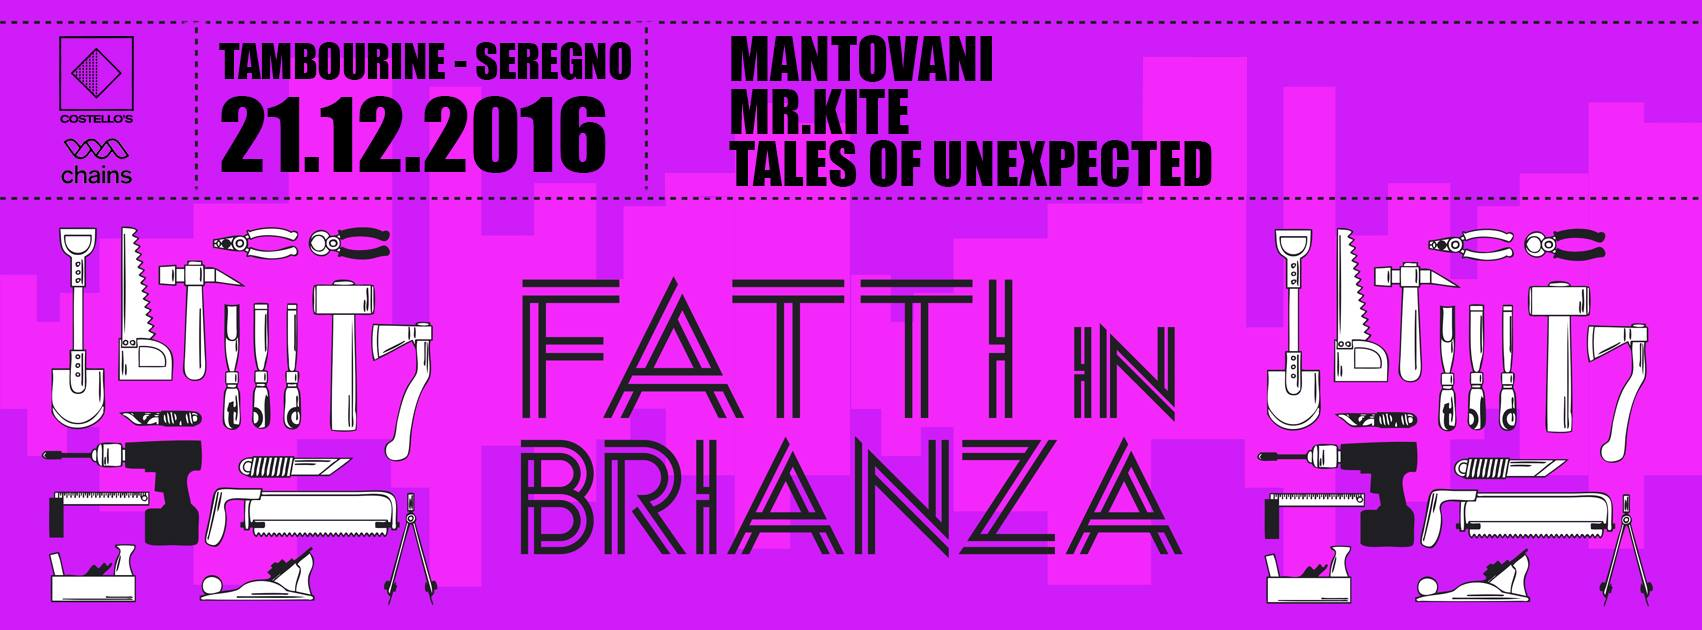 Fatti in Brianza, Mr Kite